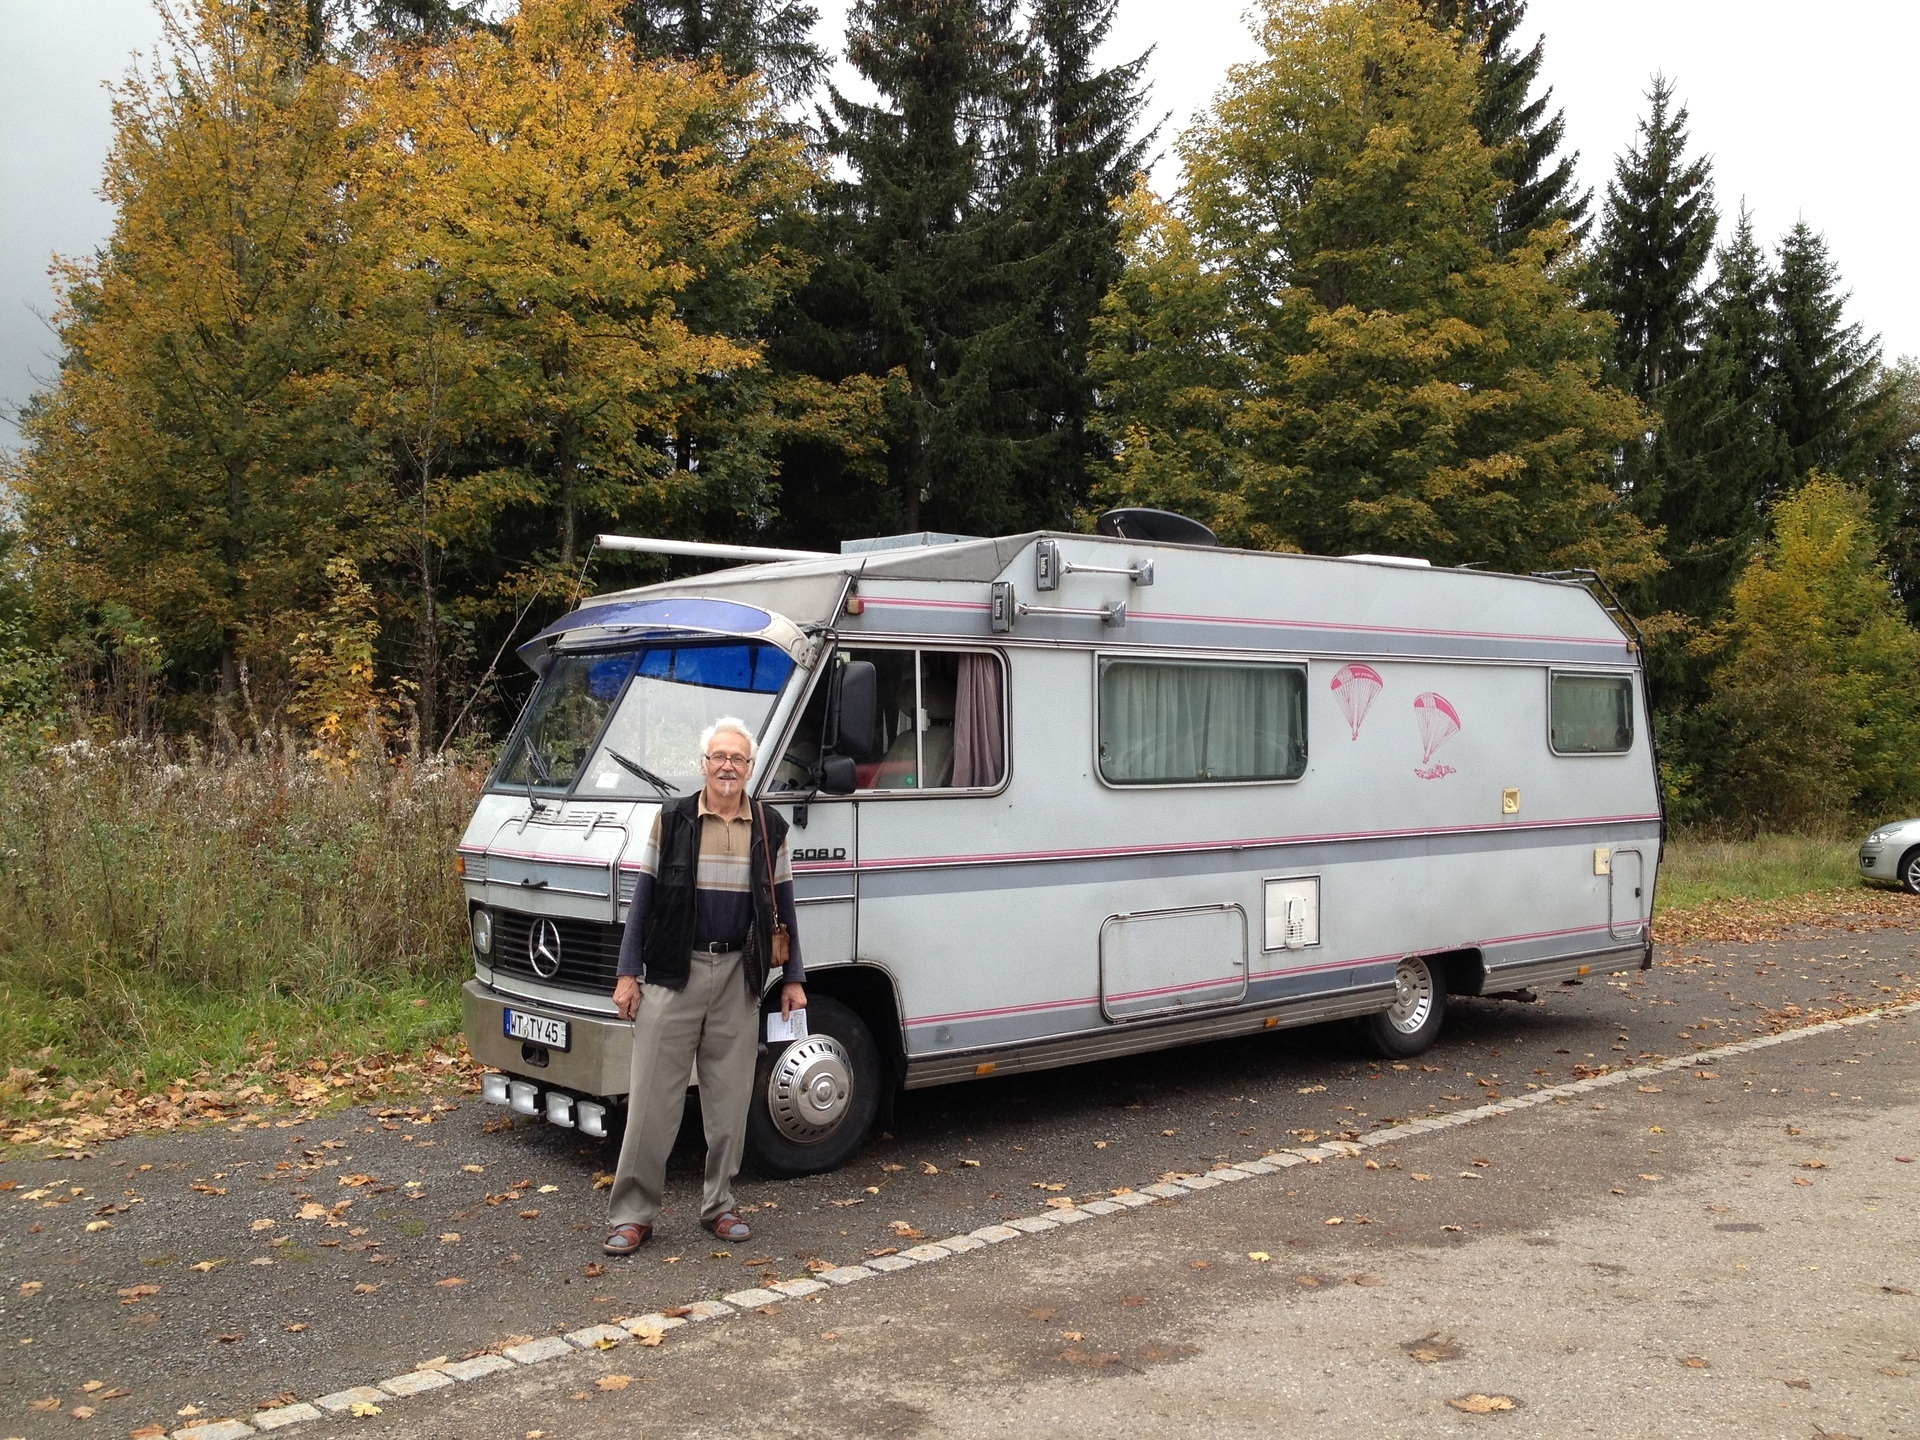 Living and travelling in a camper van with my grandfather